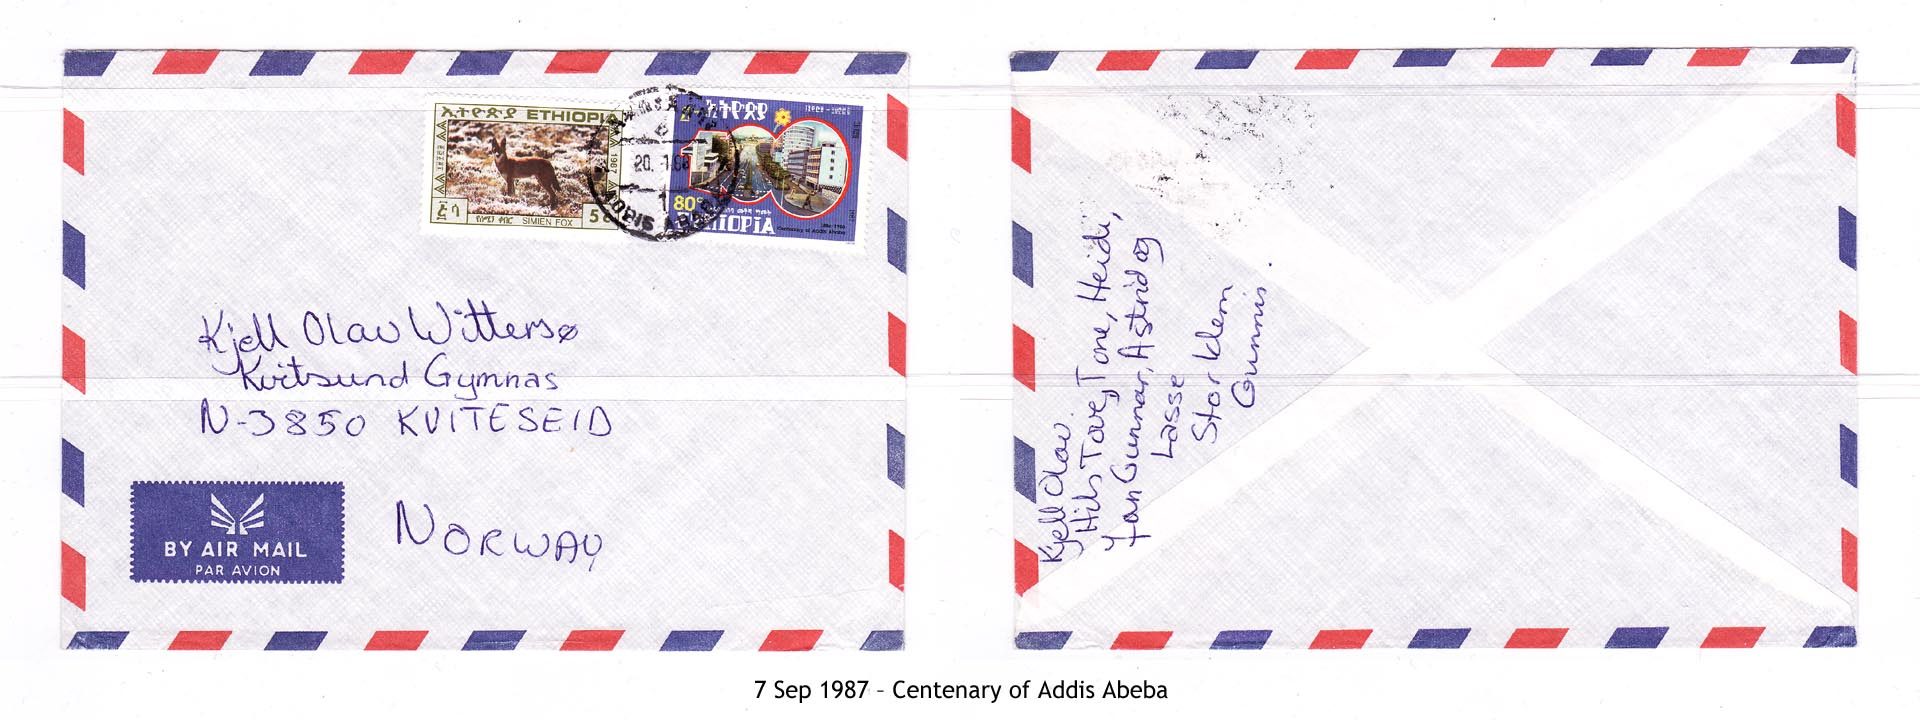 19870907 – Centenary of Addis Abeba